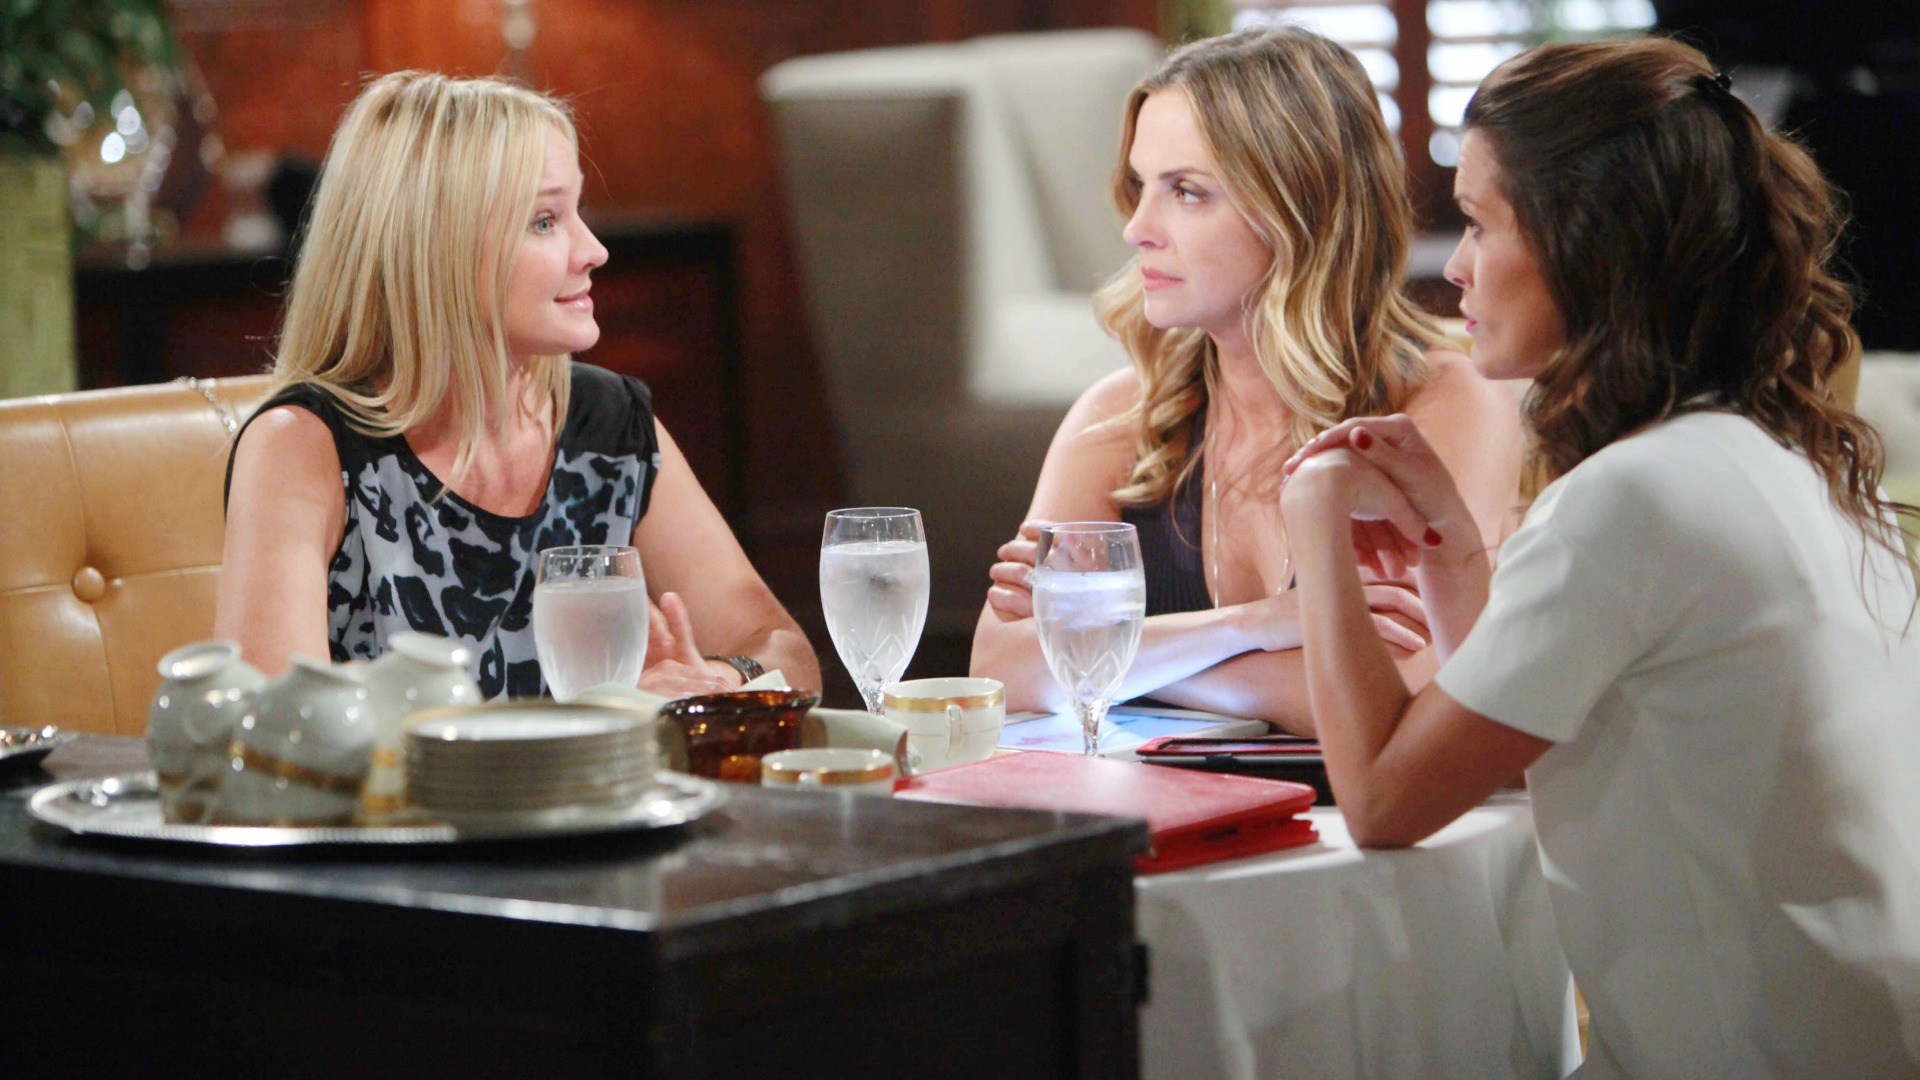 Sharon, Sage, and Chelsea get real with each other.